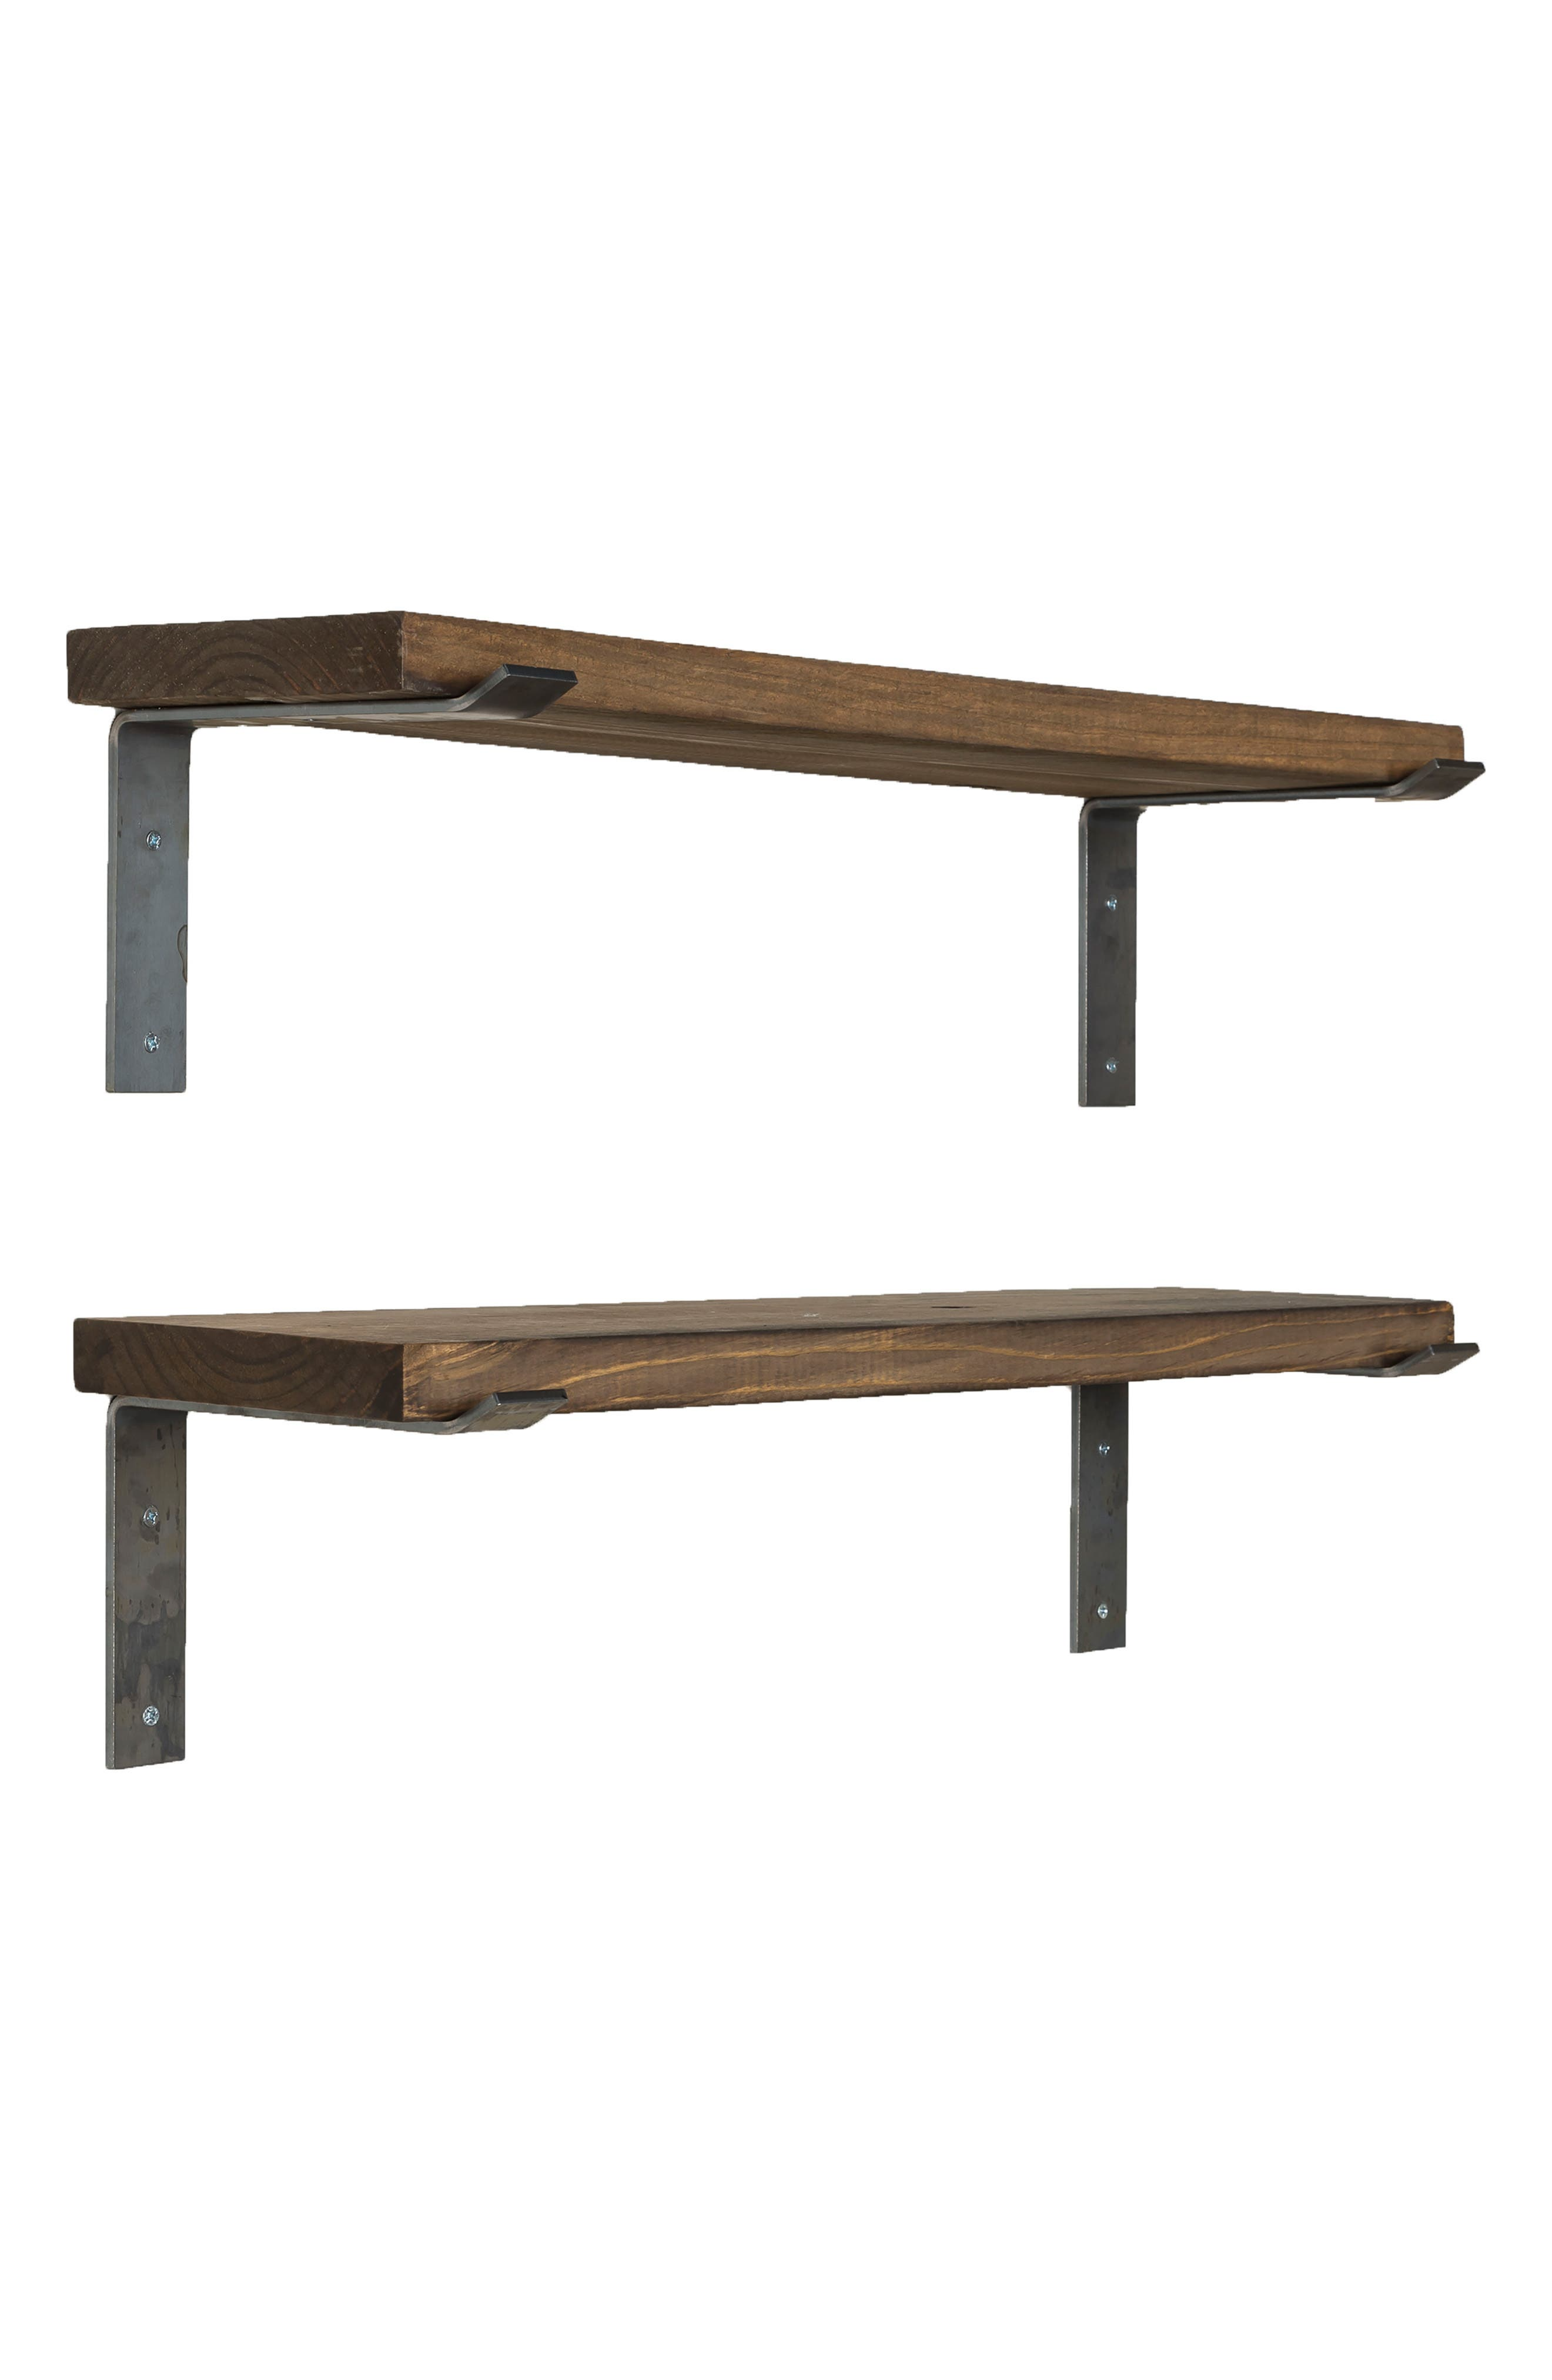 Set of 2 Industrial Bracket Shelves,                             Alternate thumbnail 7, color,                             Dark Walnut